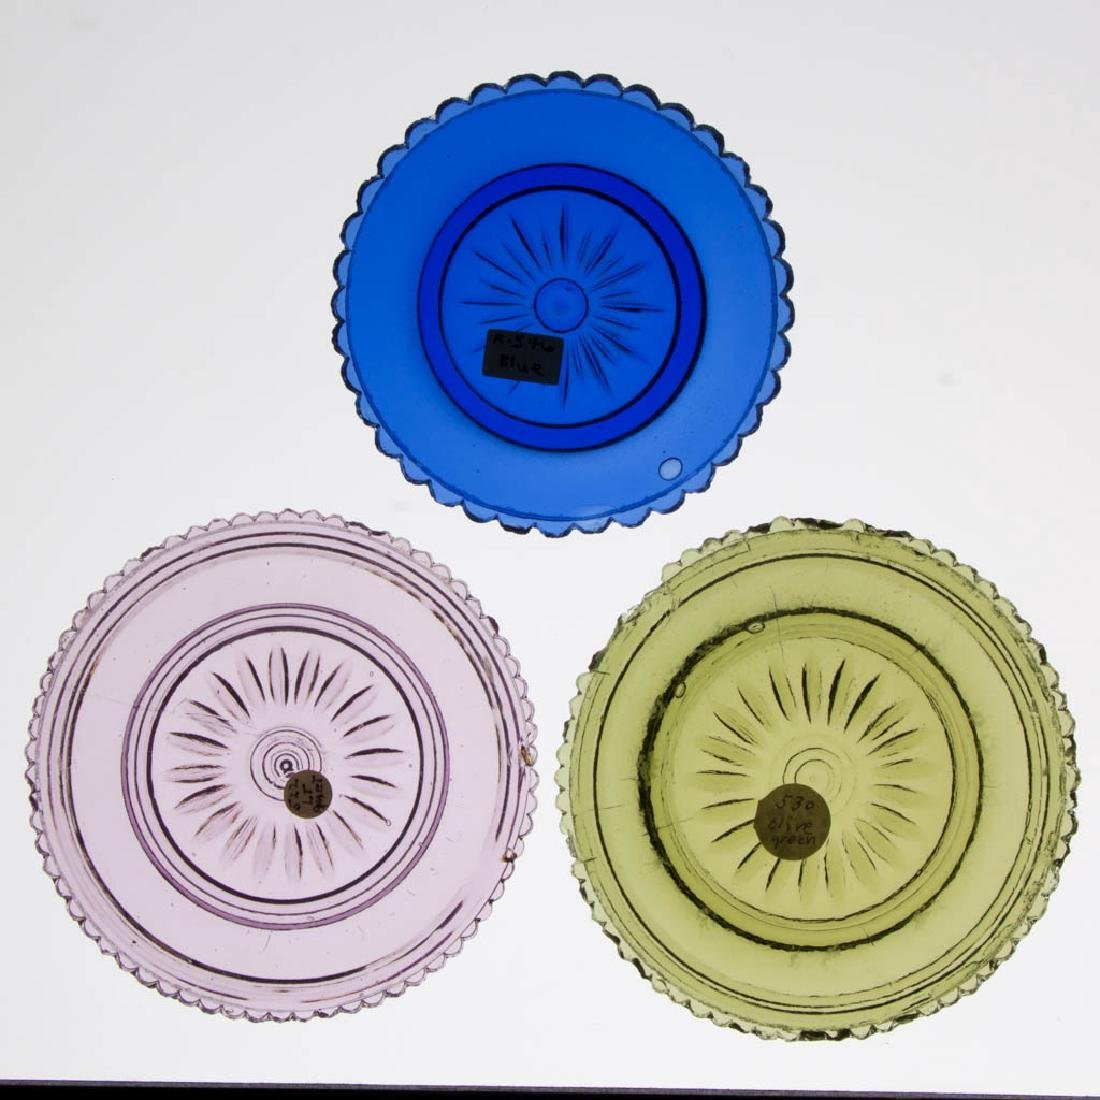 LEE/ROSE NO. 522, 530, AND 546 CUP PLATES, LOT OF THREE